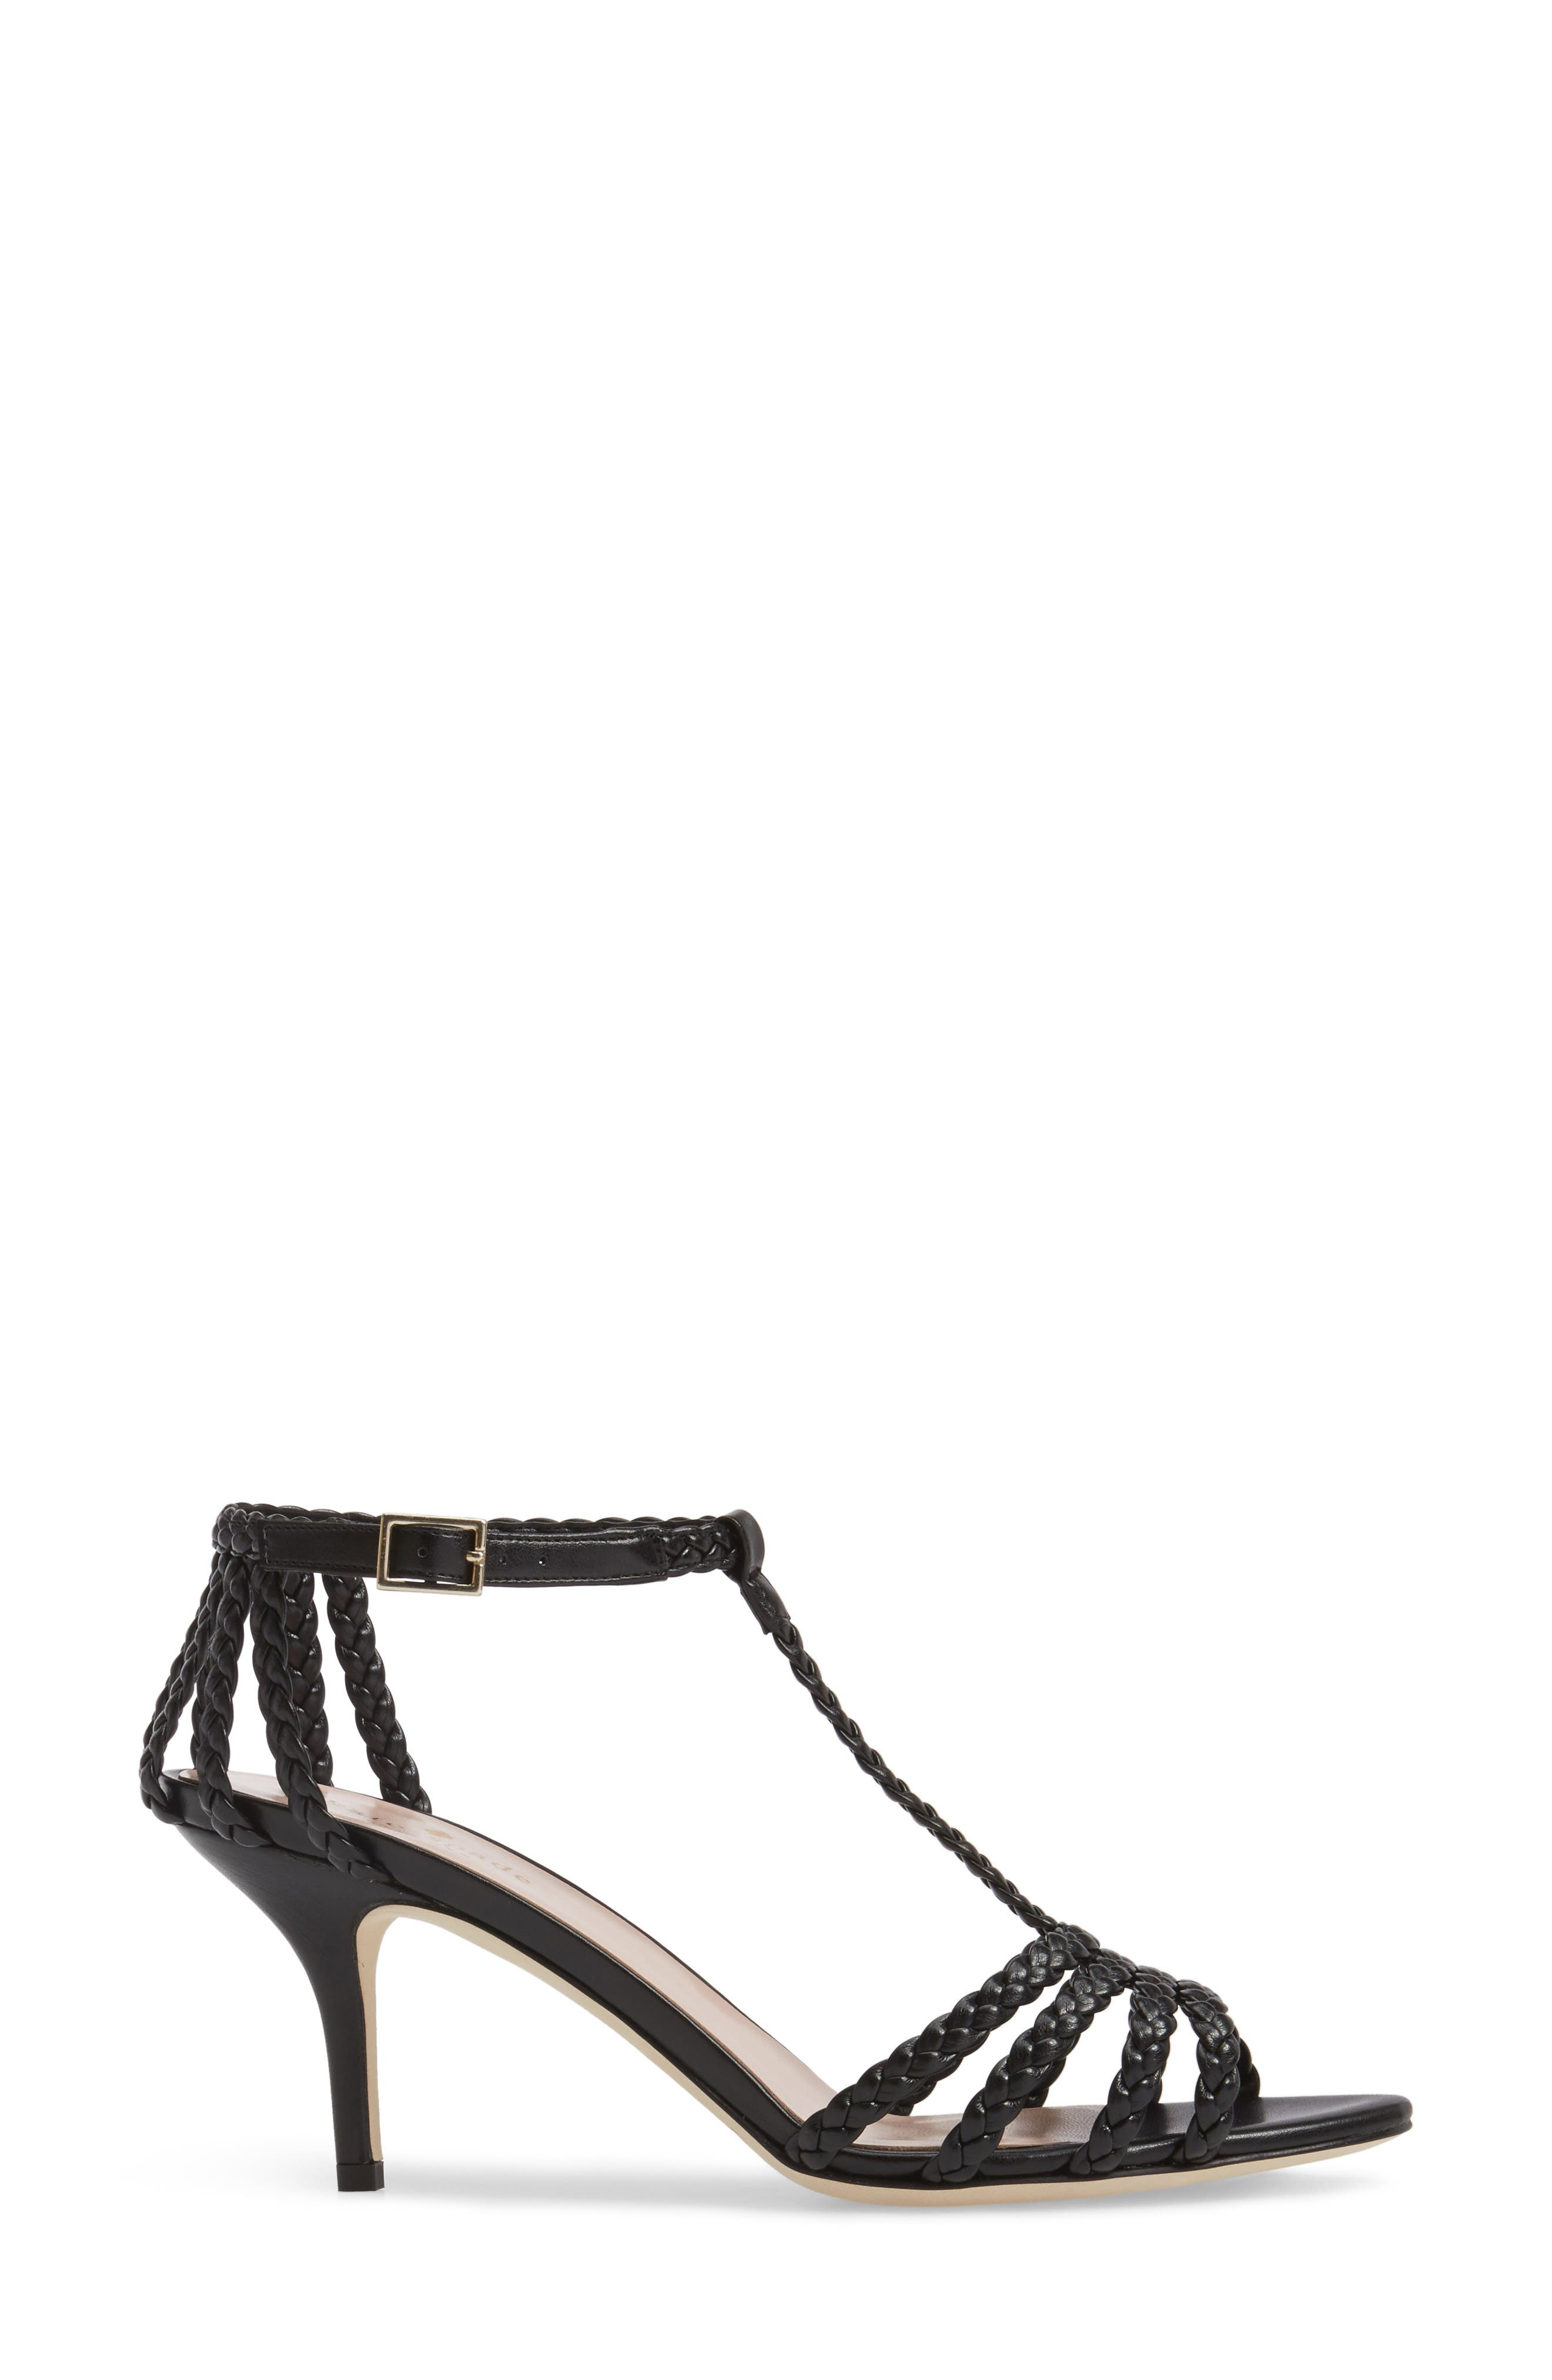 Alternate Image 3  - kate spade new york sullivan strappy sandal (Women)